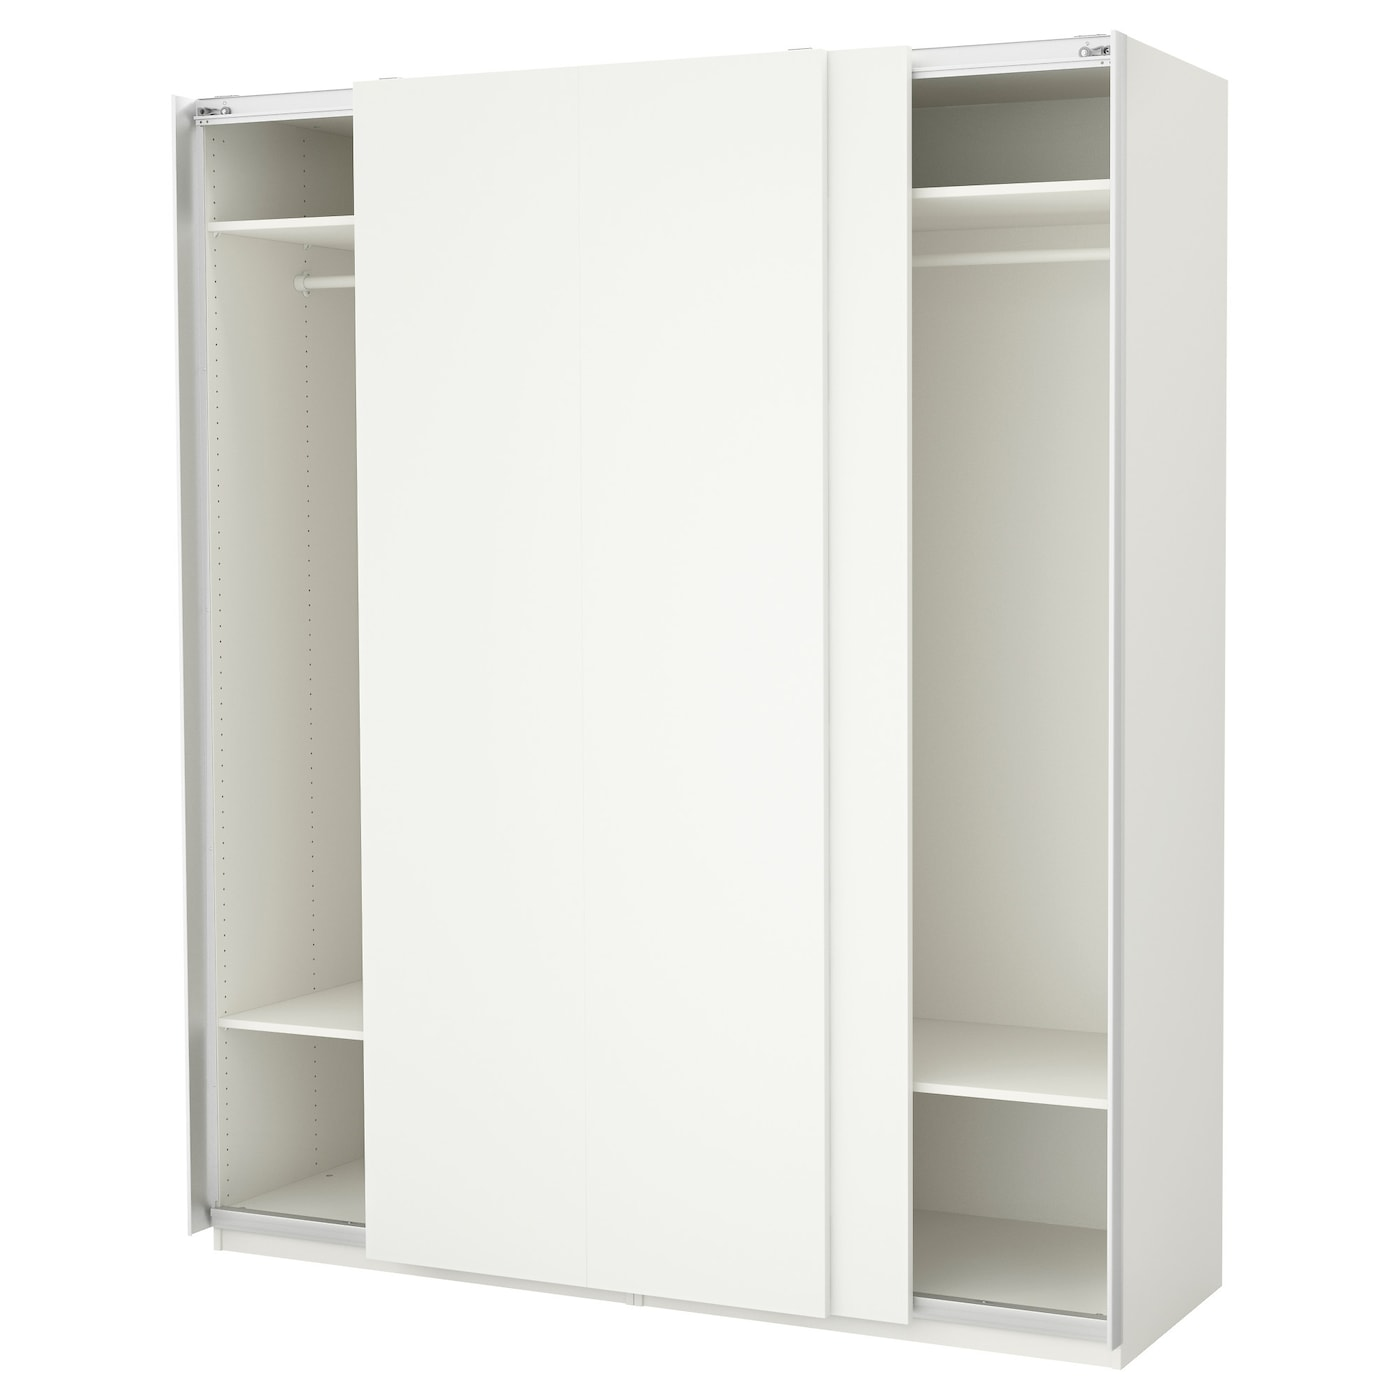 pax wardrobe white hasvik white 200 x 66 x 236 cm ikea. Black Bedroom Furniture Sets. Home Design Ideas